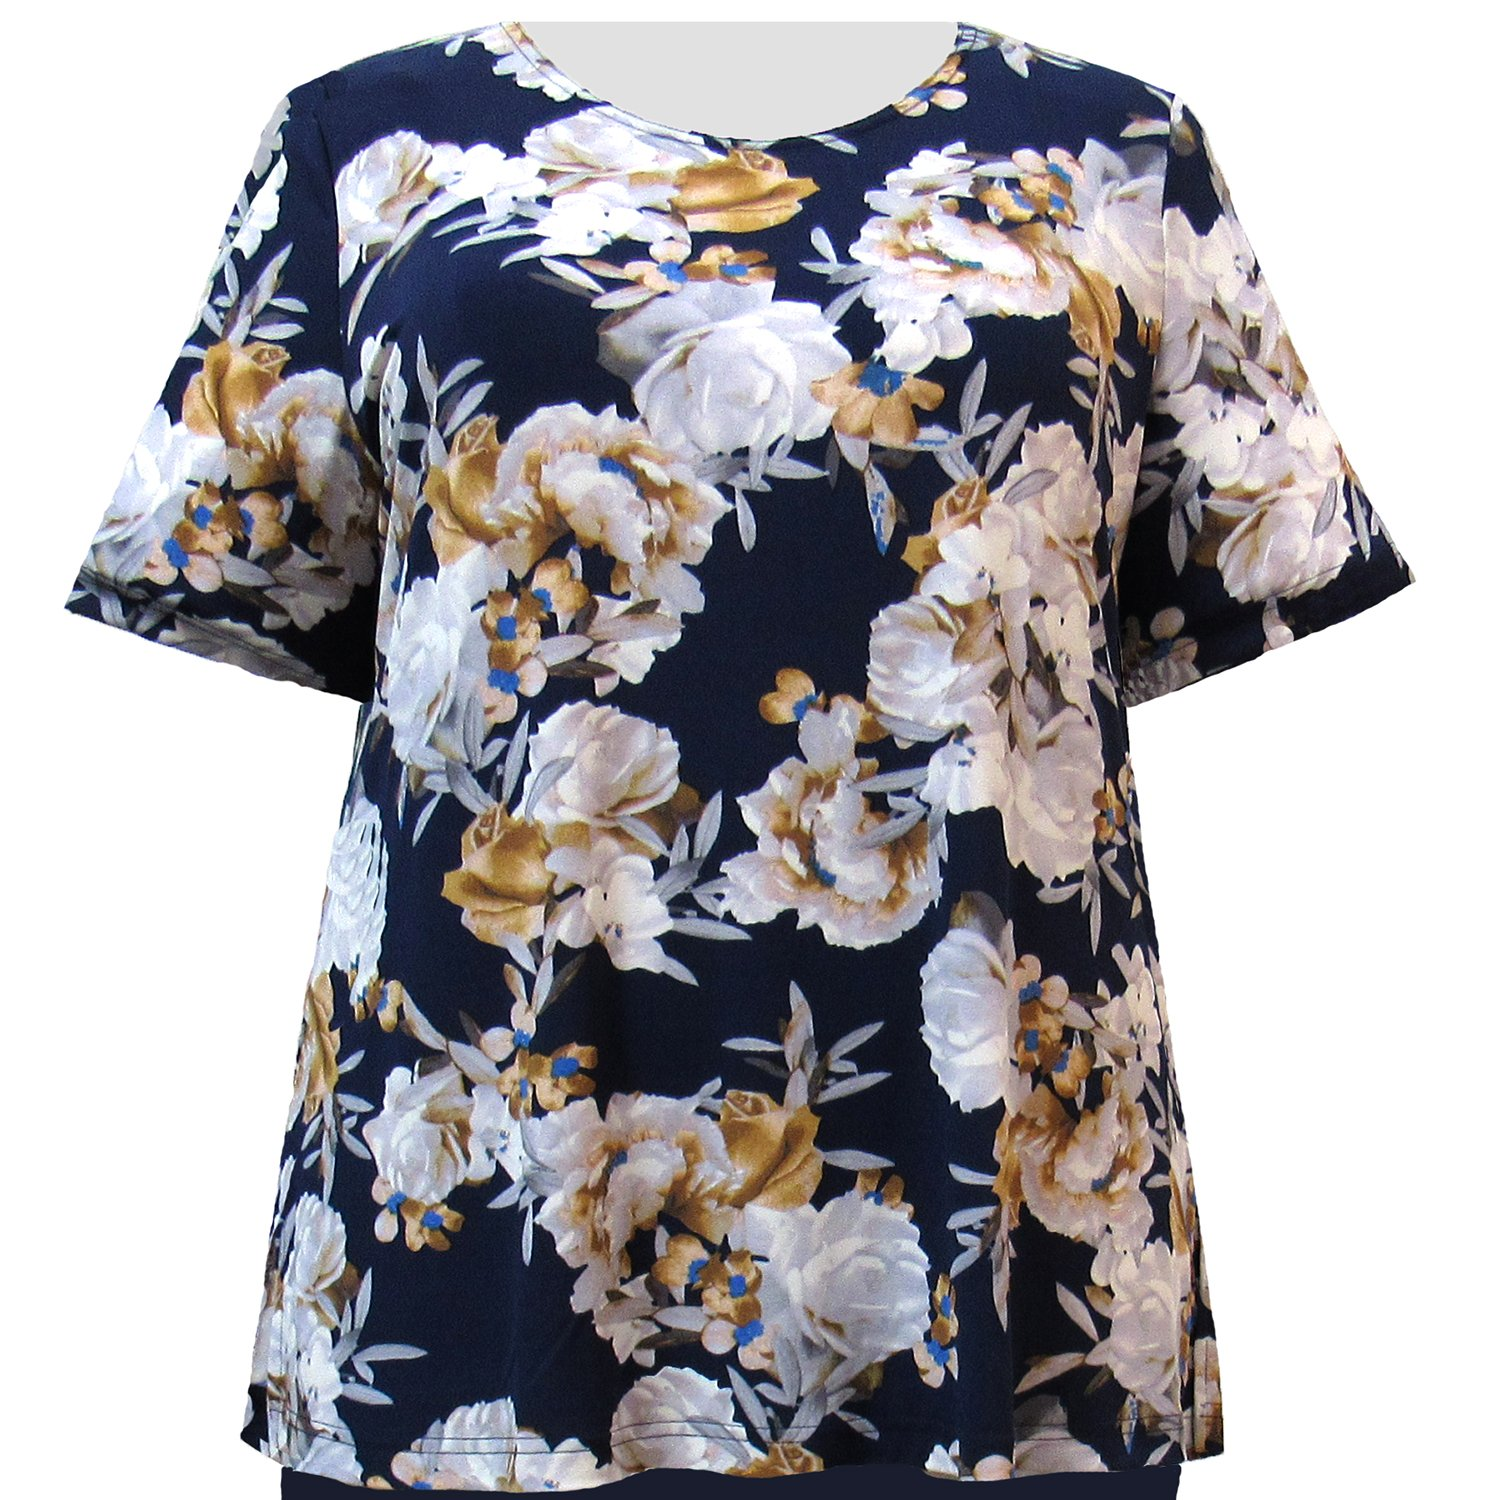 A Personal Touch Women's Plus Size Knit Top Navy Bouquet